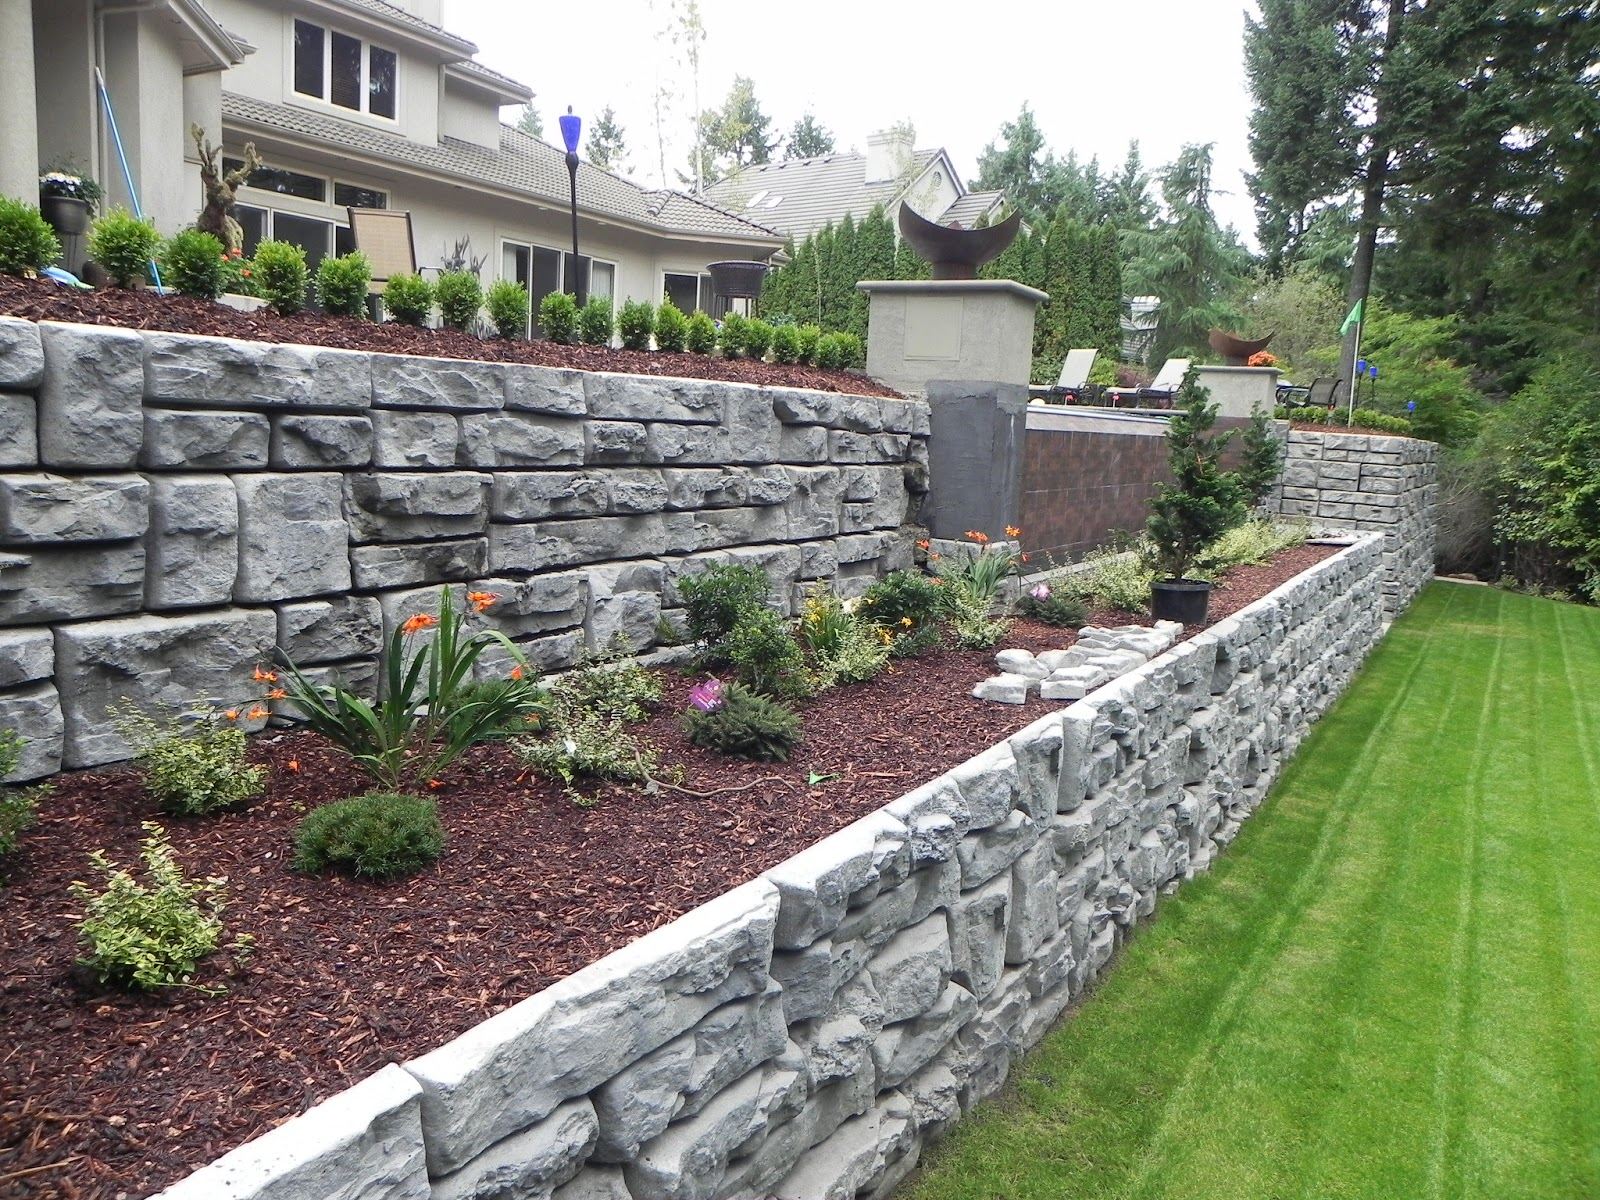 Building A Retaining Wall: Everything You Need To Consider ...